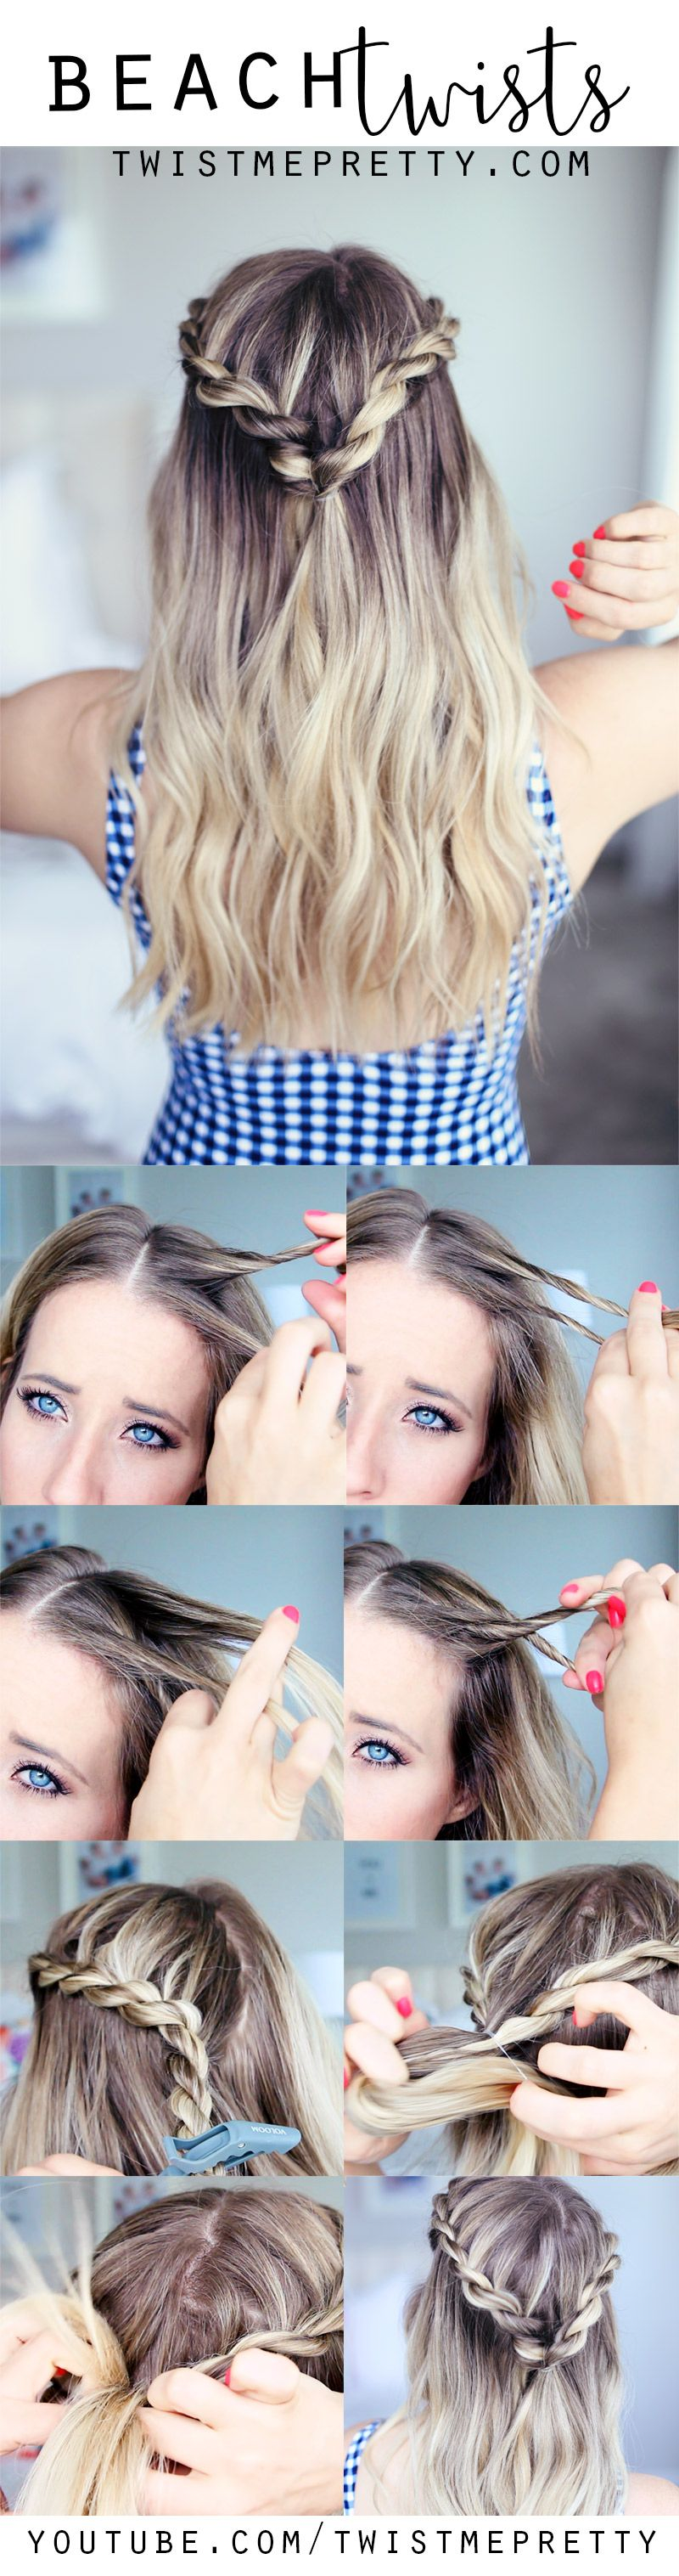 Love these cute beach twists, they make a the perfect